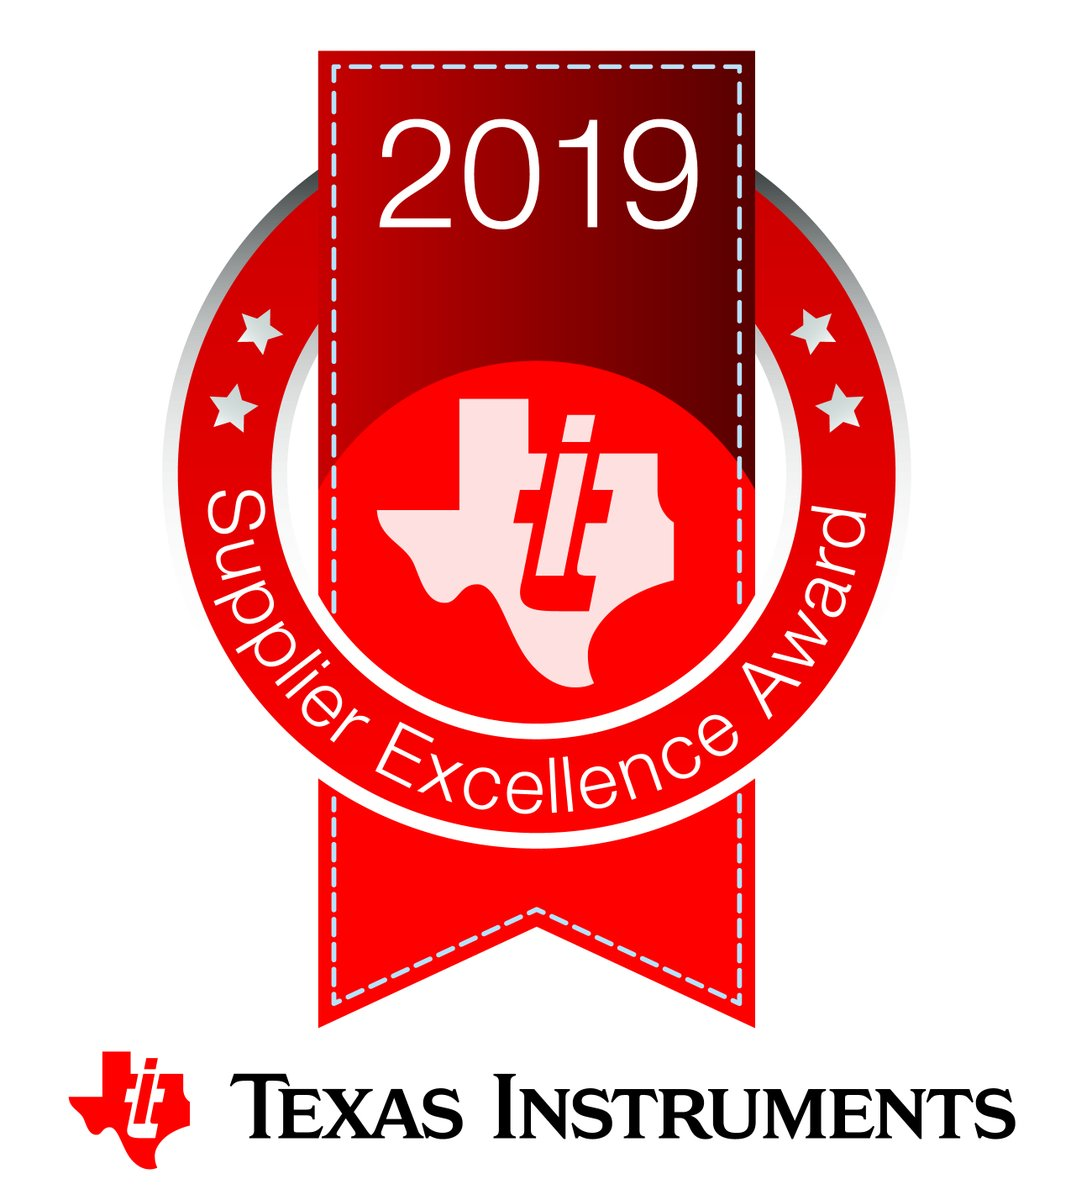 ASE has been recognized for #excellence by @TXInstruments after receiving the 2019 Supplier Excellence Award. We are highly driven by our continuous pursuit of excellence in innovation, productivity, and quality to help customers succeed. Congrats to the ASE team! #dedication https://t.co/PLzrodmDK6